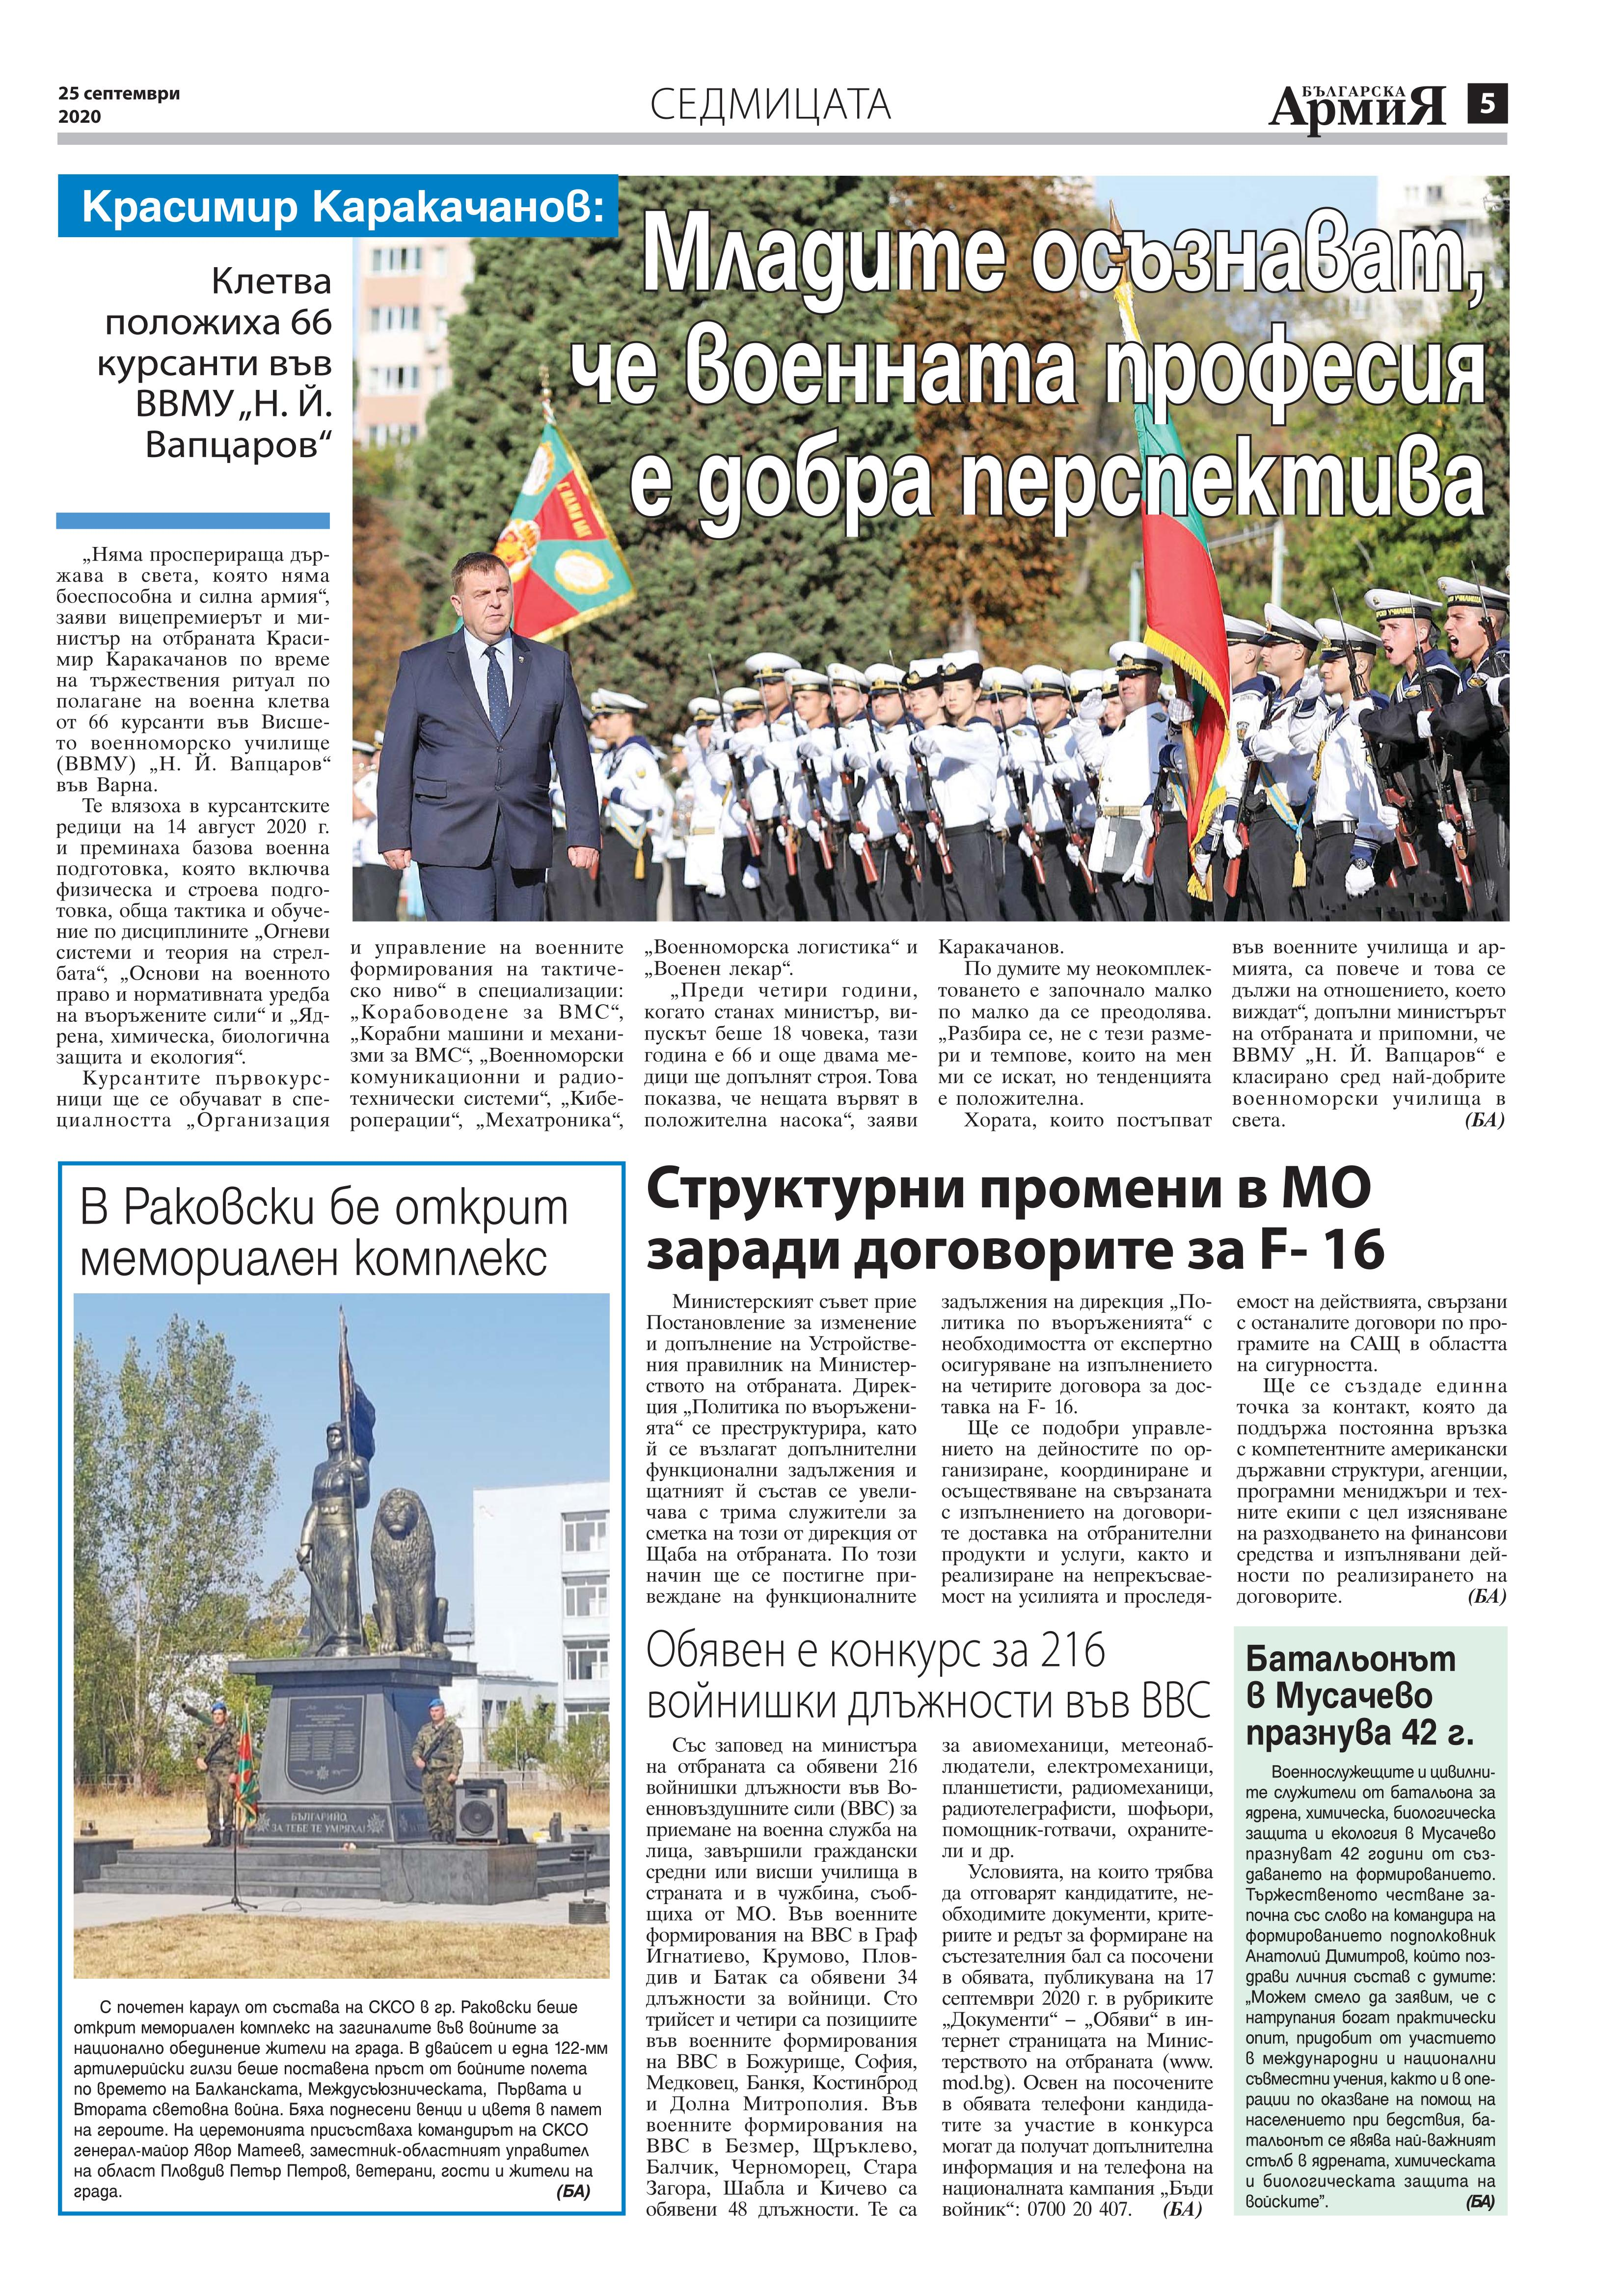 https://armymedia.bg/wp-content/uploads/2015/06/05.page1_-148.jpg